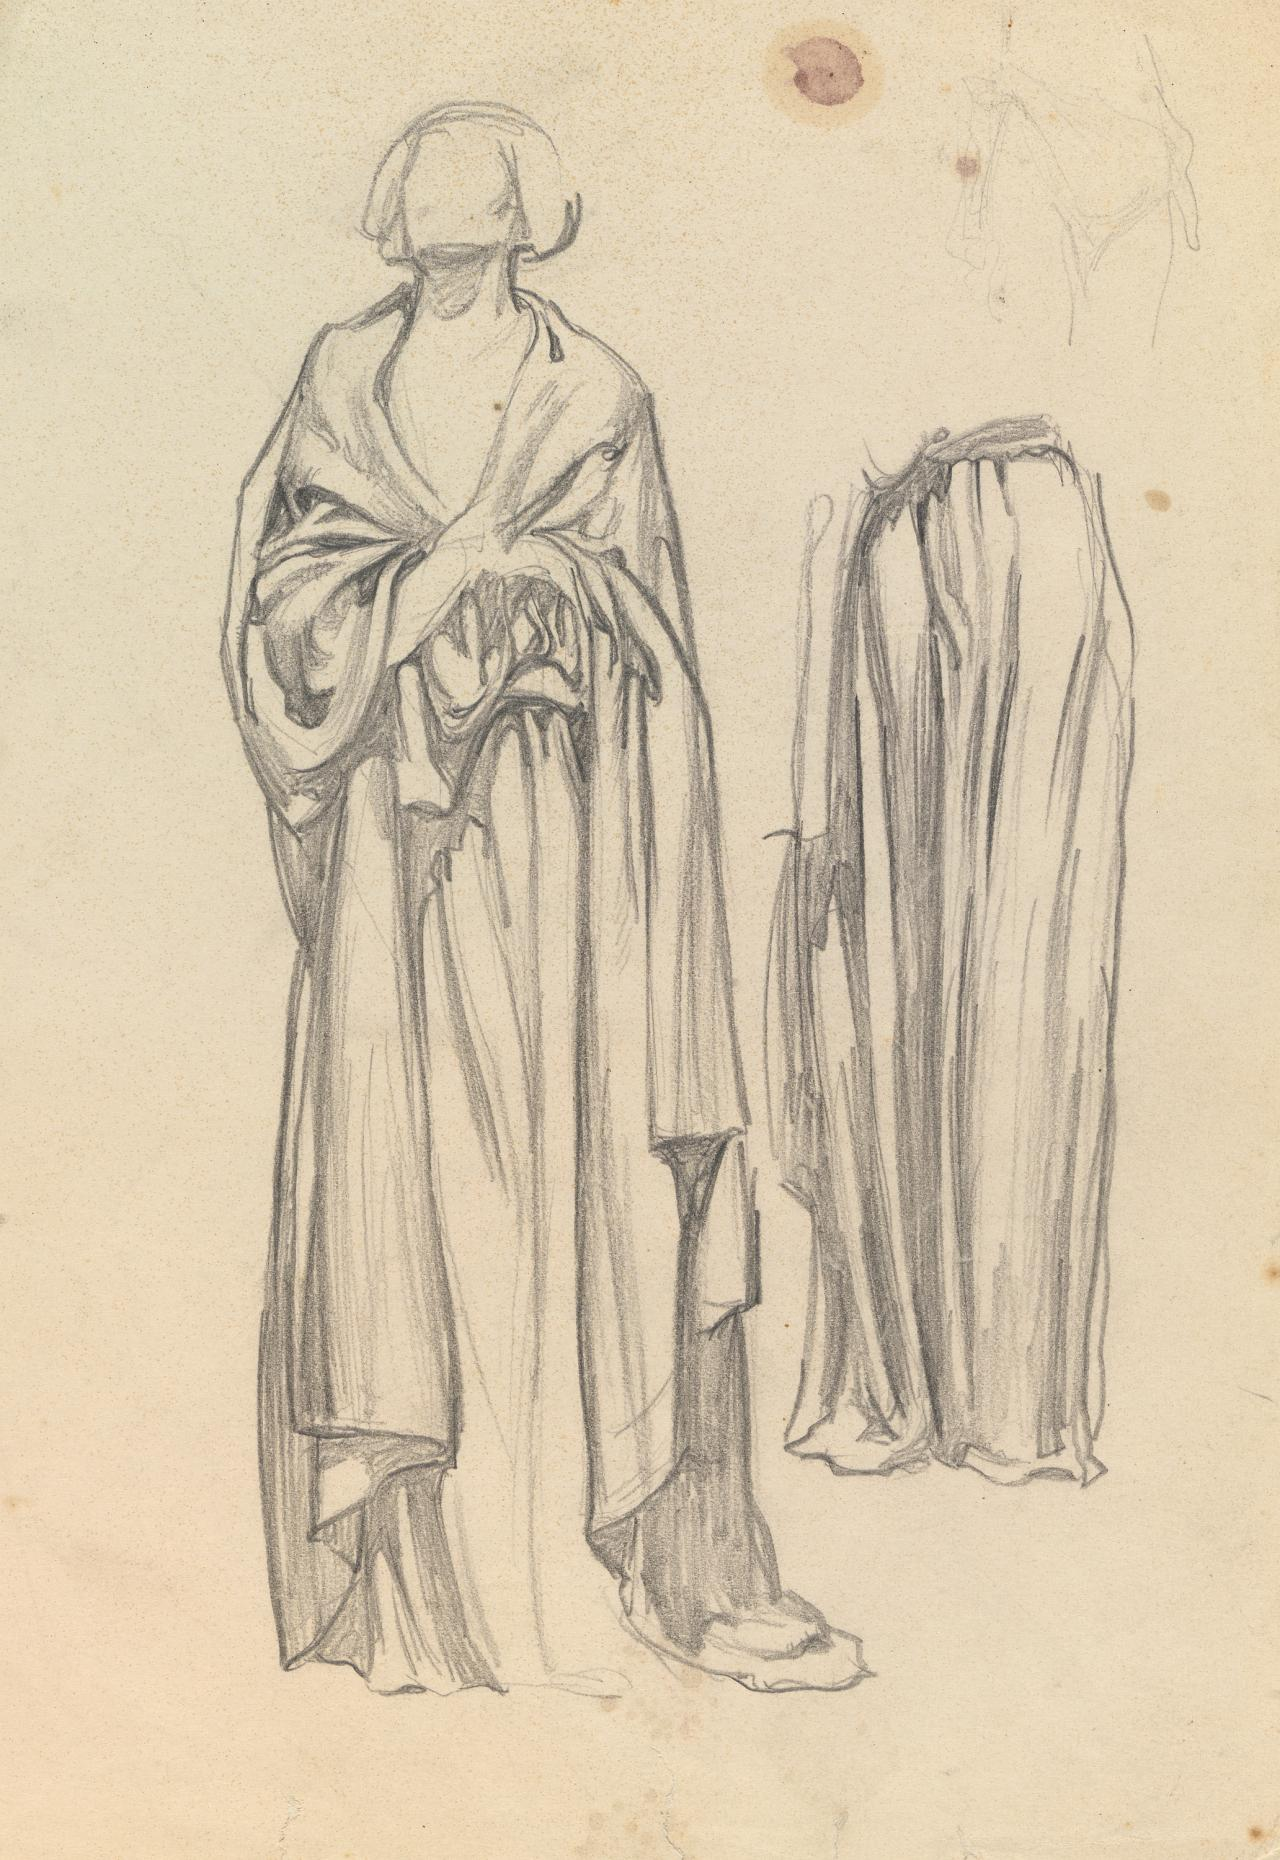 Drapery studies for the Myer murals; (on reverse) sketches of a rabbit